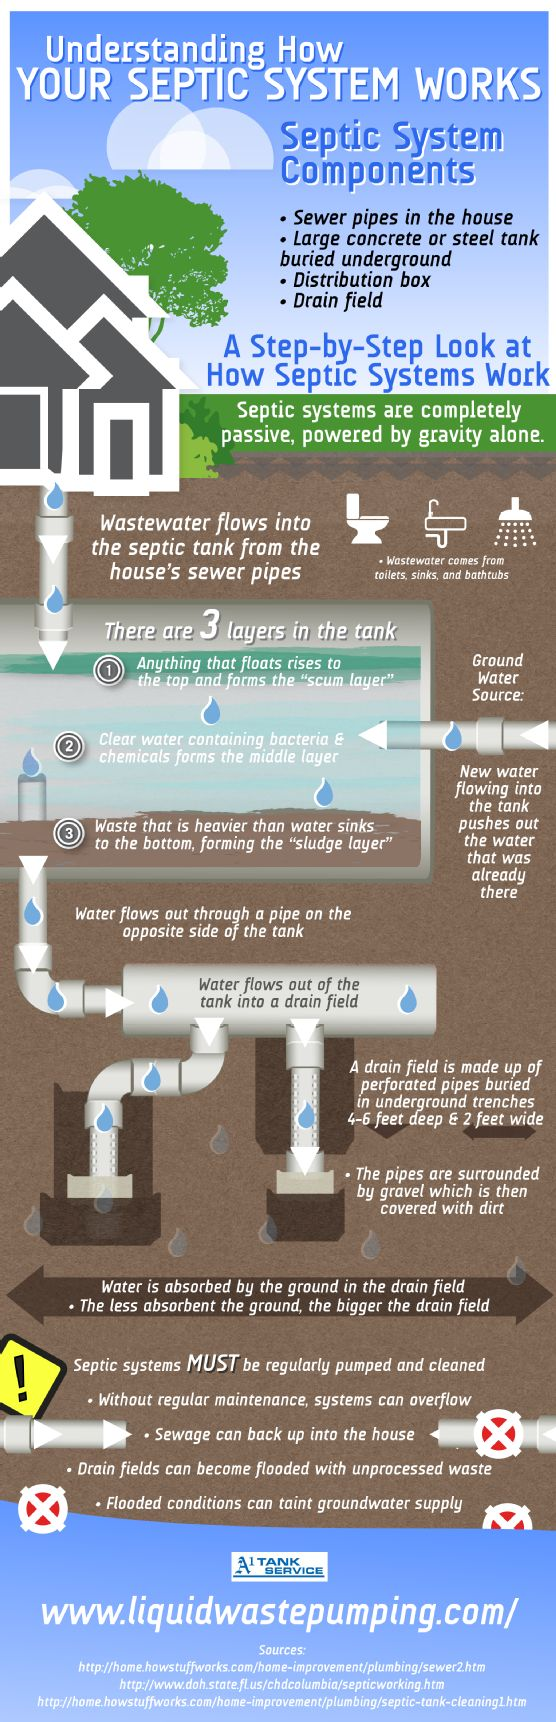 If your septic tank doesn't receive regular maintenance, it may spill unprocessed sewage into your home. Not only is this disgusting, it can also be expensive to clean. Learn more about maintaining your septic system when you take a look at this infographic. Source: http://www.liquidwastepumping.com/639372/2013/02/05/understanding-how-your-septic-system-works-infographic.html